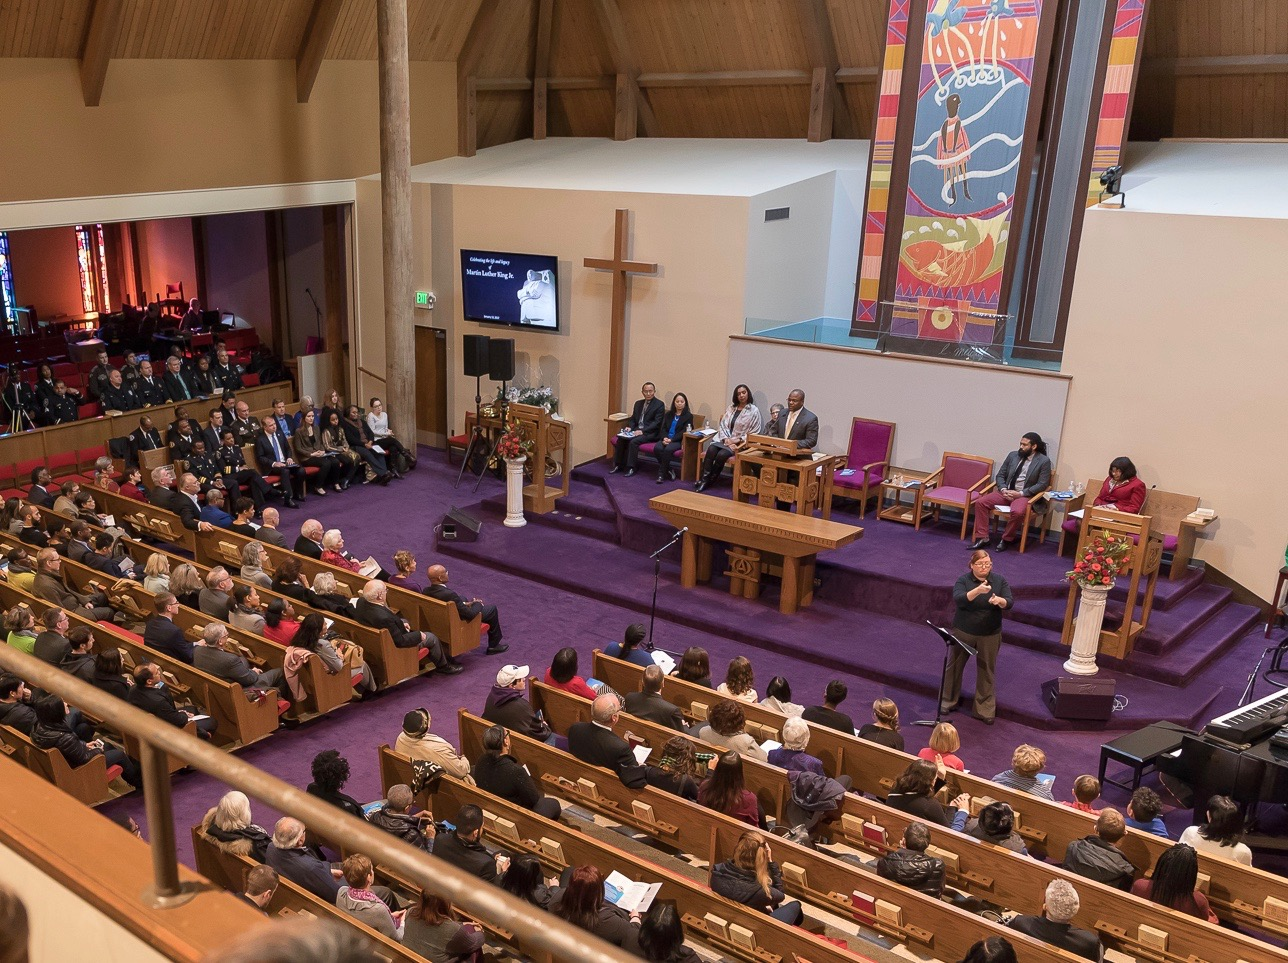 Seattle Colleges' Martin Luther King Jr. celebration at Mount Zion Baptist Church in Seattle, WA